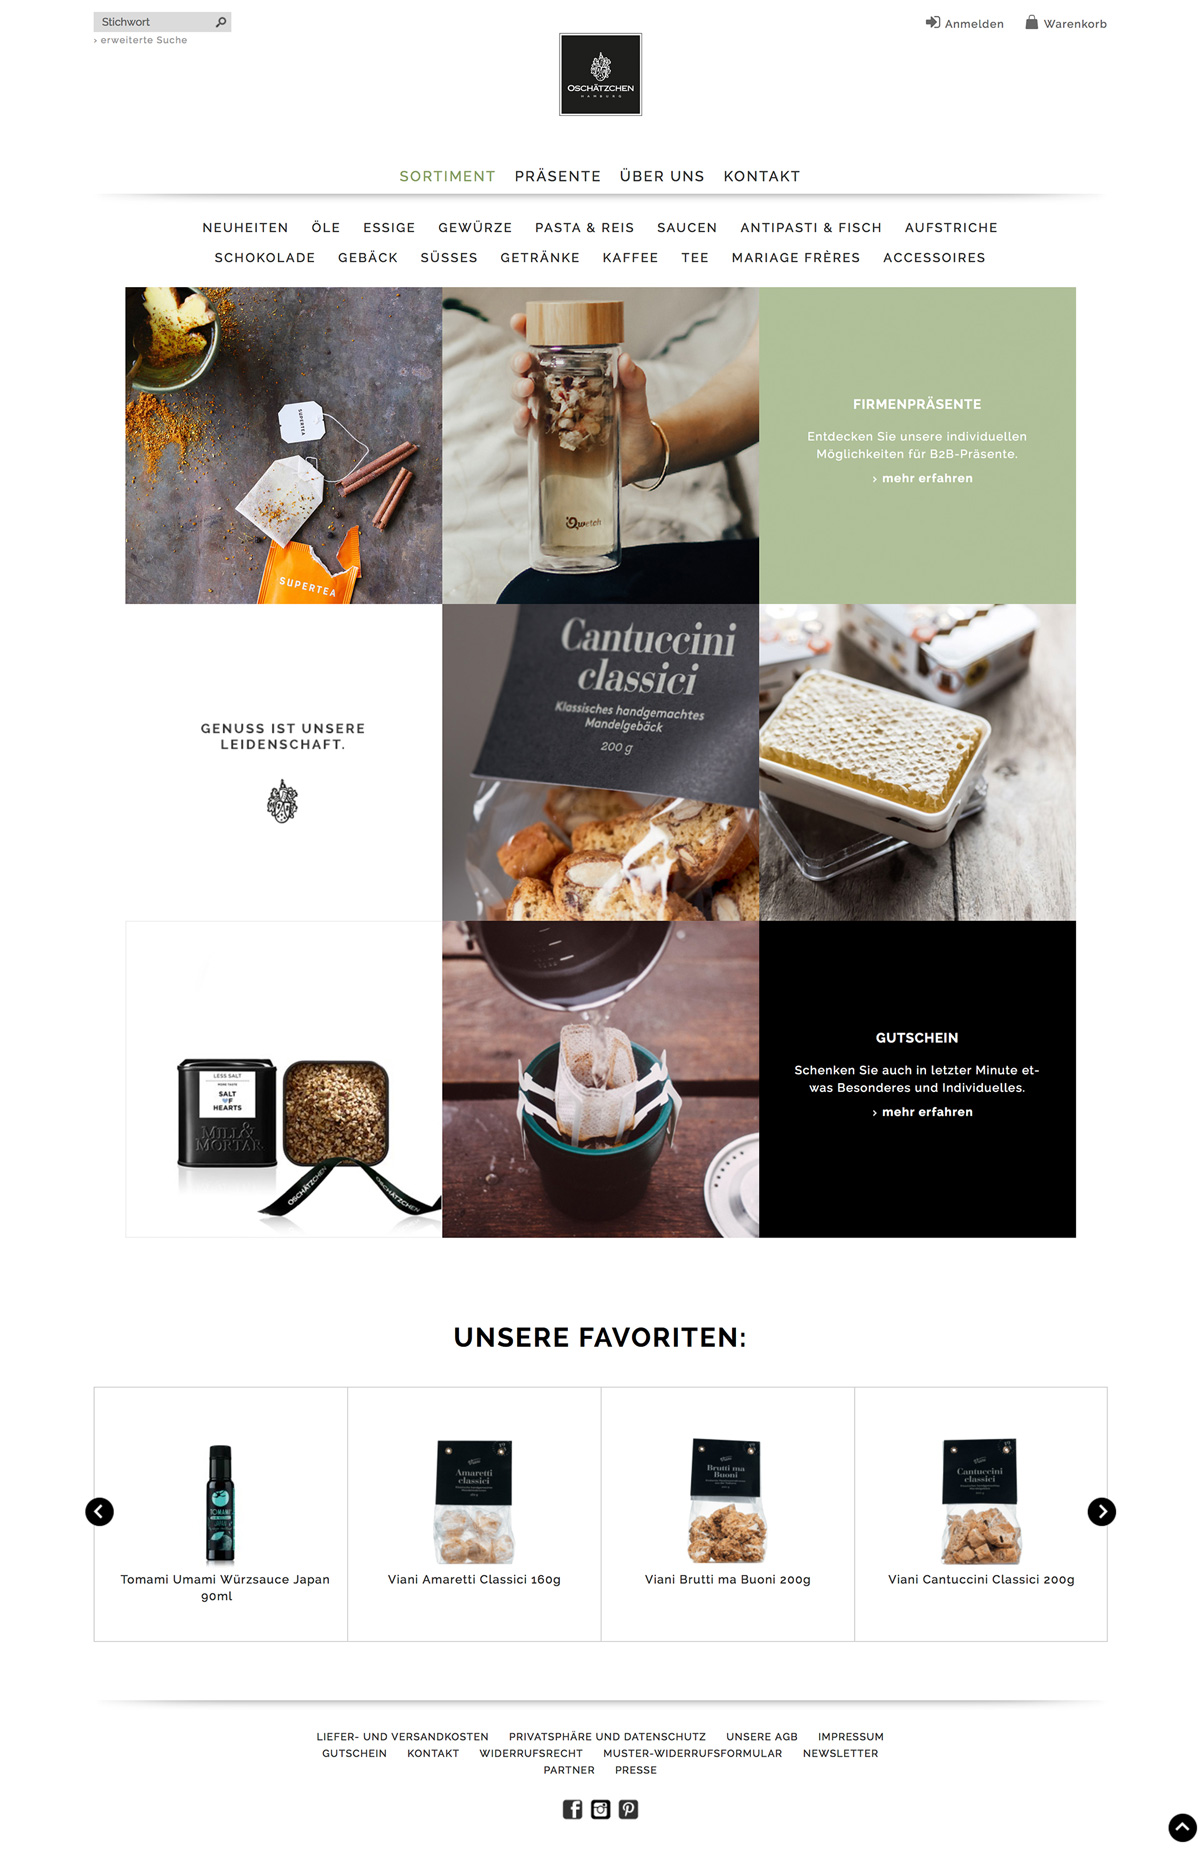 Online Shop User Interface Design